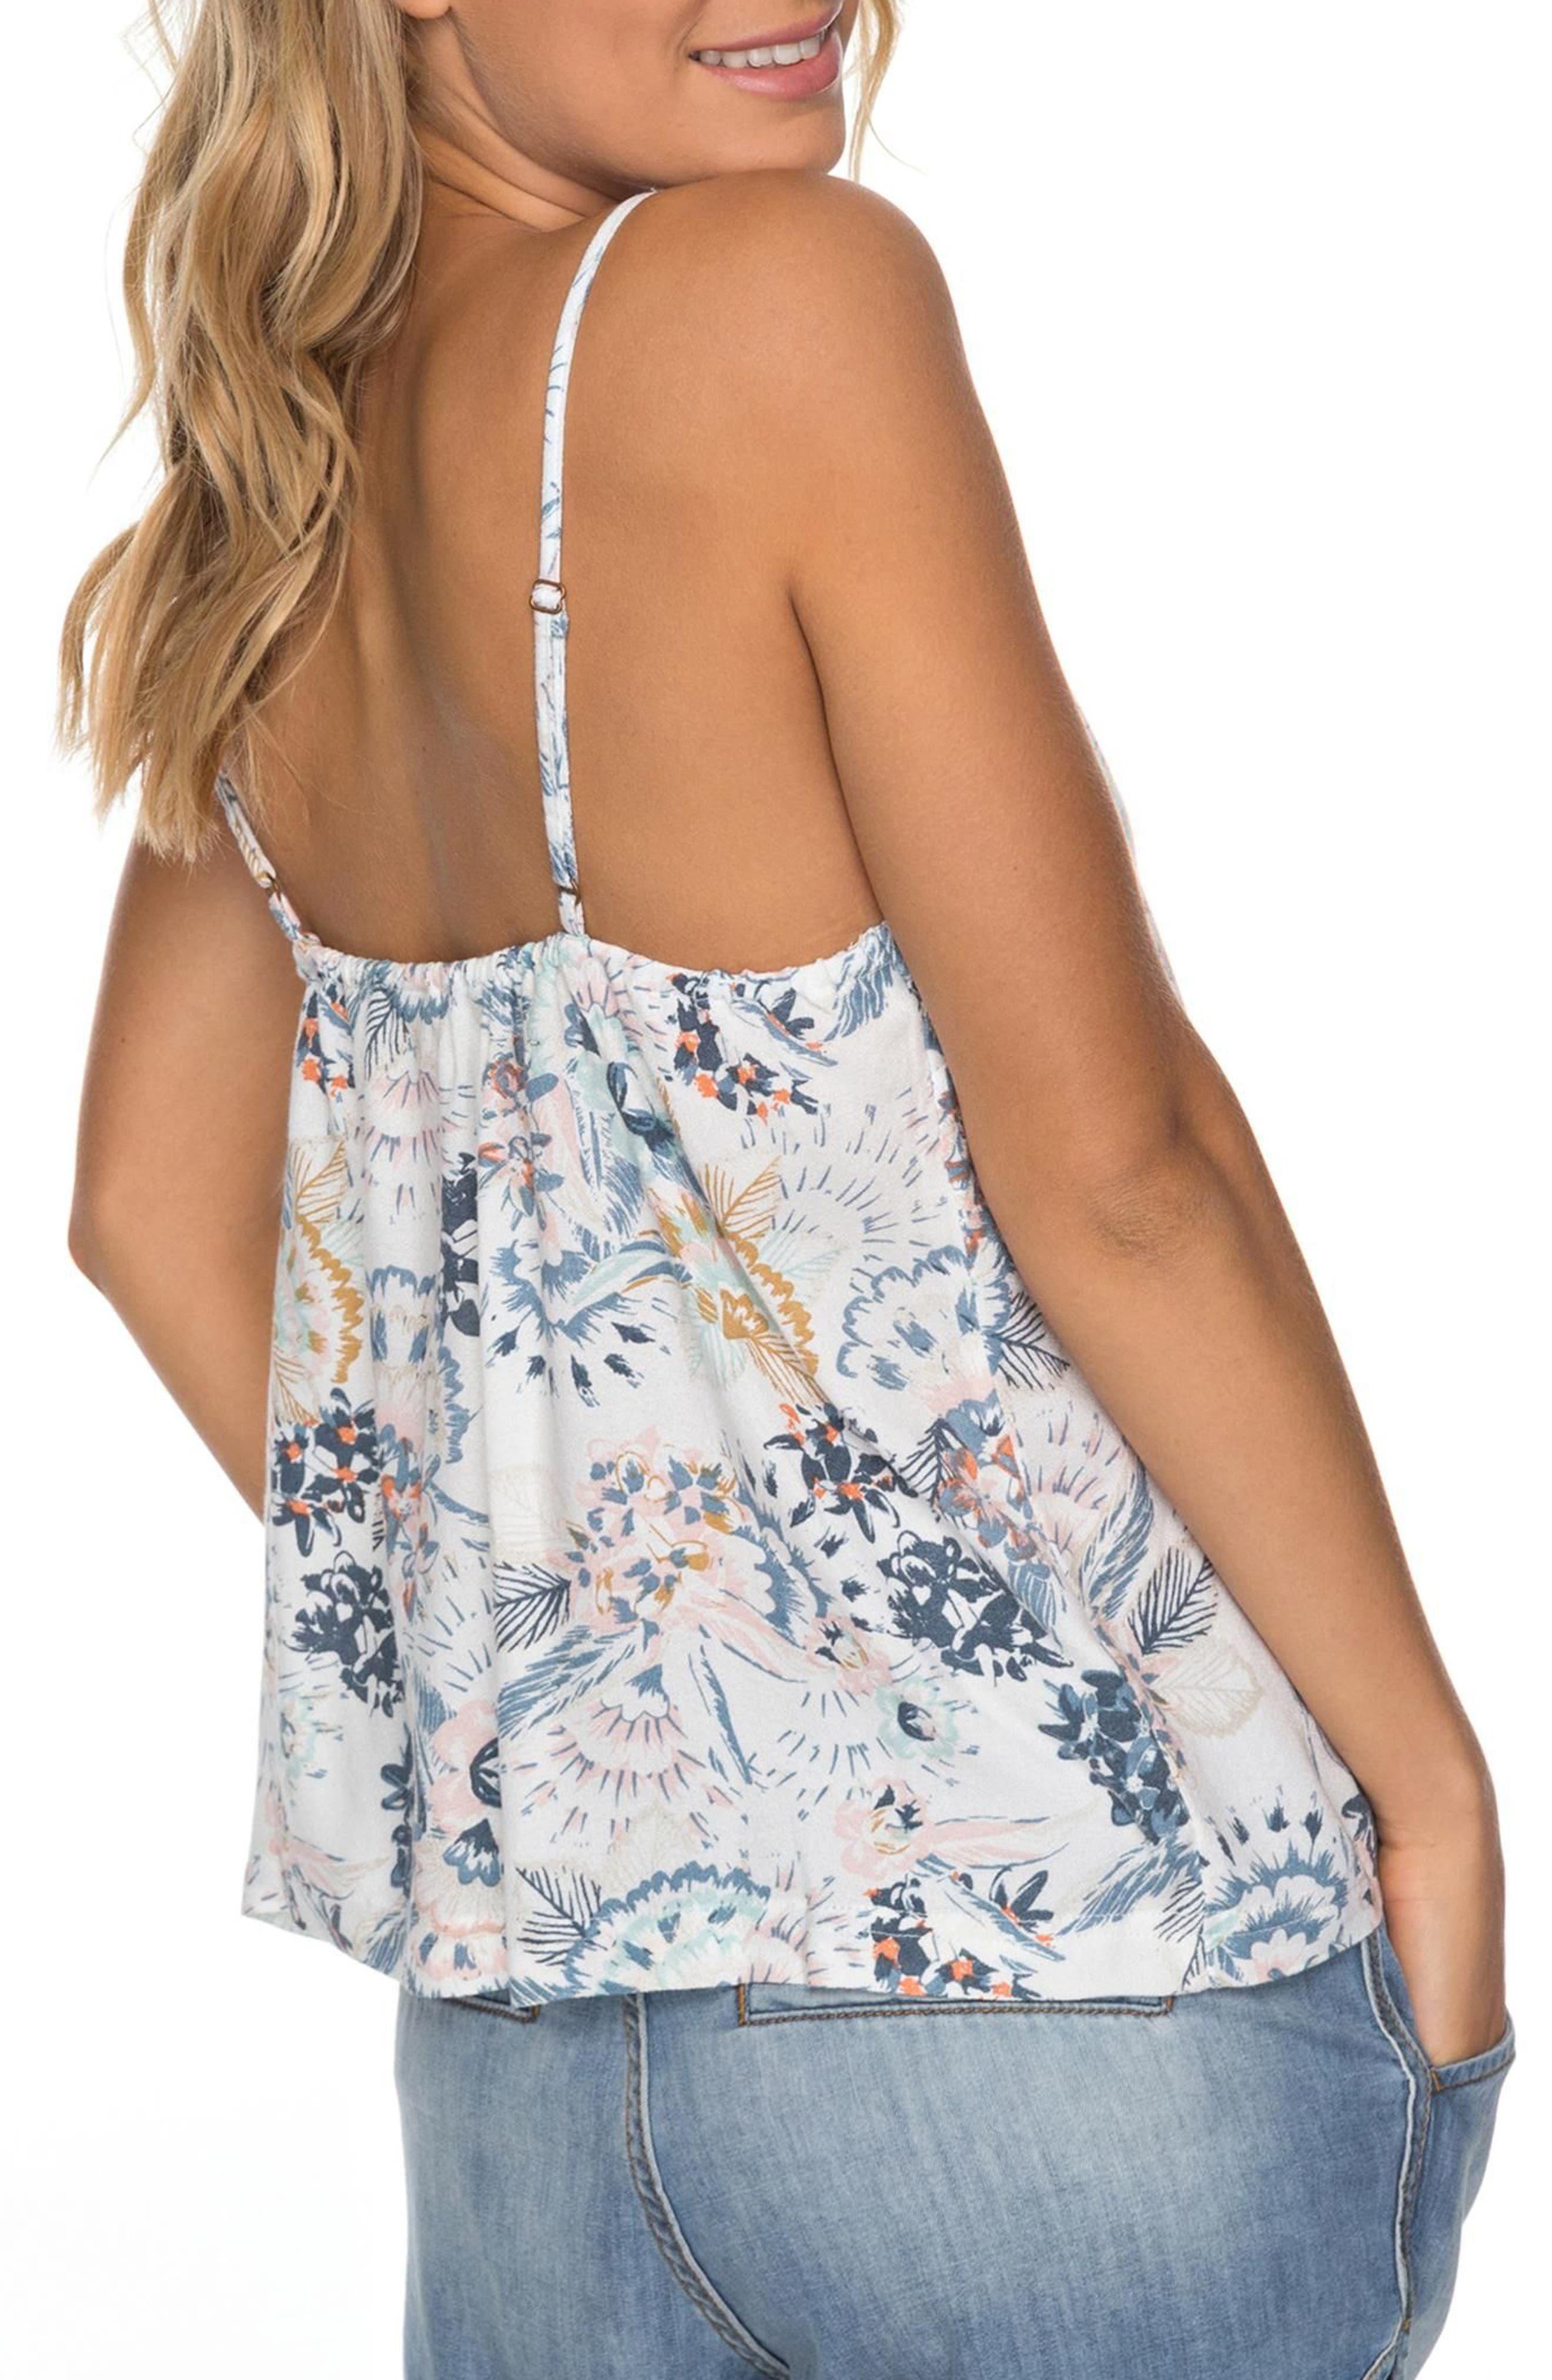 Fantasy Earth Flowy Camisole,                             Alternate thumbnail 2, color,                             101